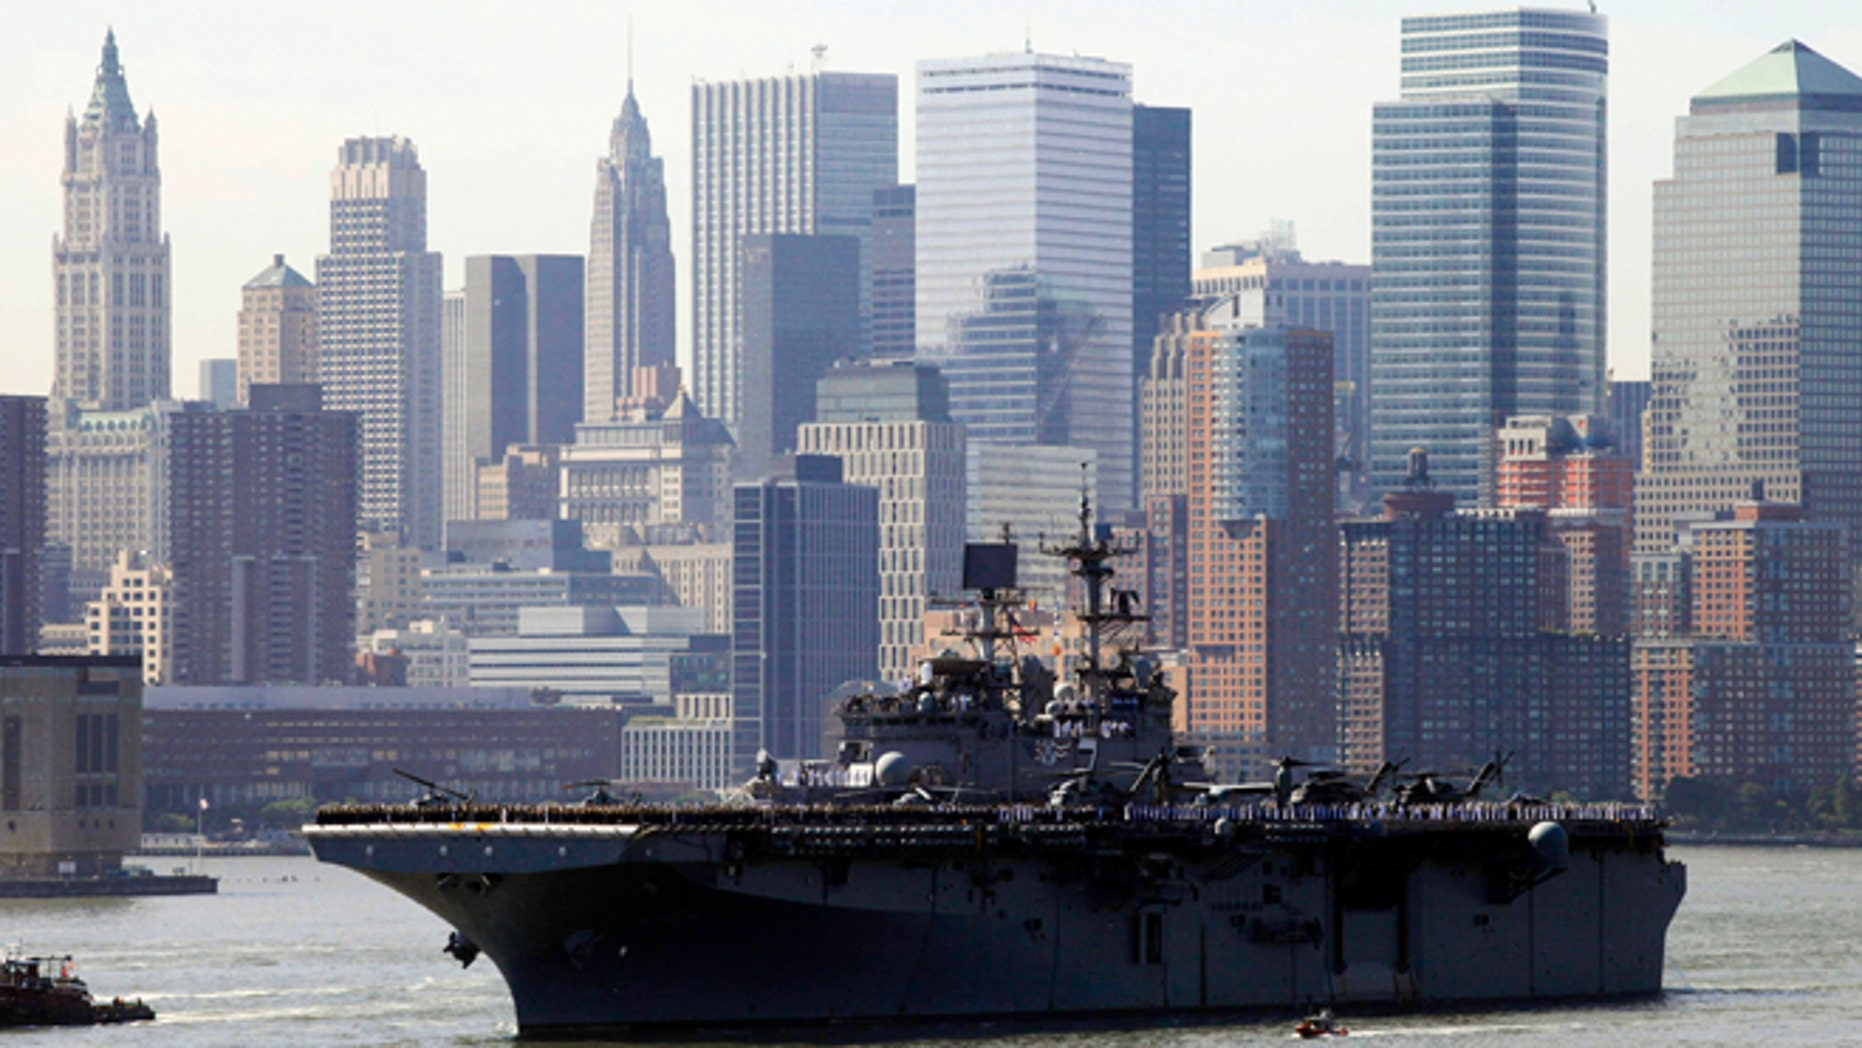 May 26, 2010: Sailors line the deck of the USS Iwo Jima as it passes the lower Manhattan skyline on arrival in New York Harbor for the start of Fleet Week. After a year's absence, Fleet Week is coming back to New York City. Three Navy ships and two Coast Guard cutters are scheduled to arrive in New York Harbor on Wednesday, May 21, 2014, the start of the week. (AP/Mark Lennihan, File)